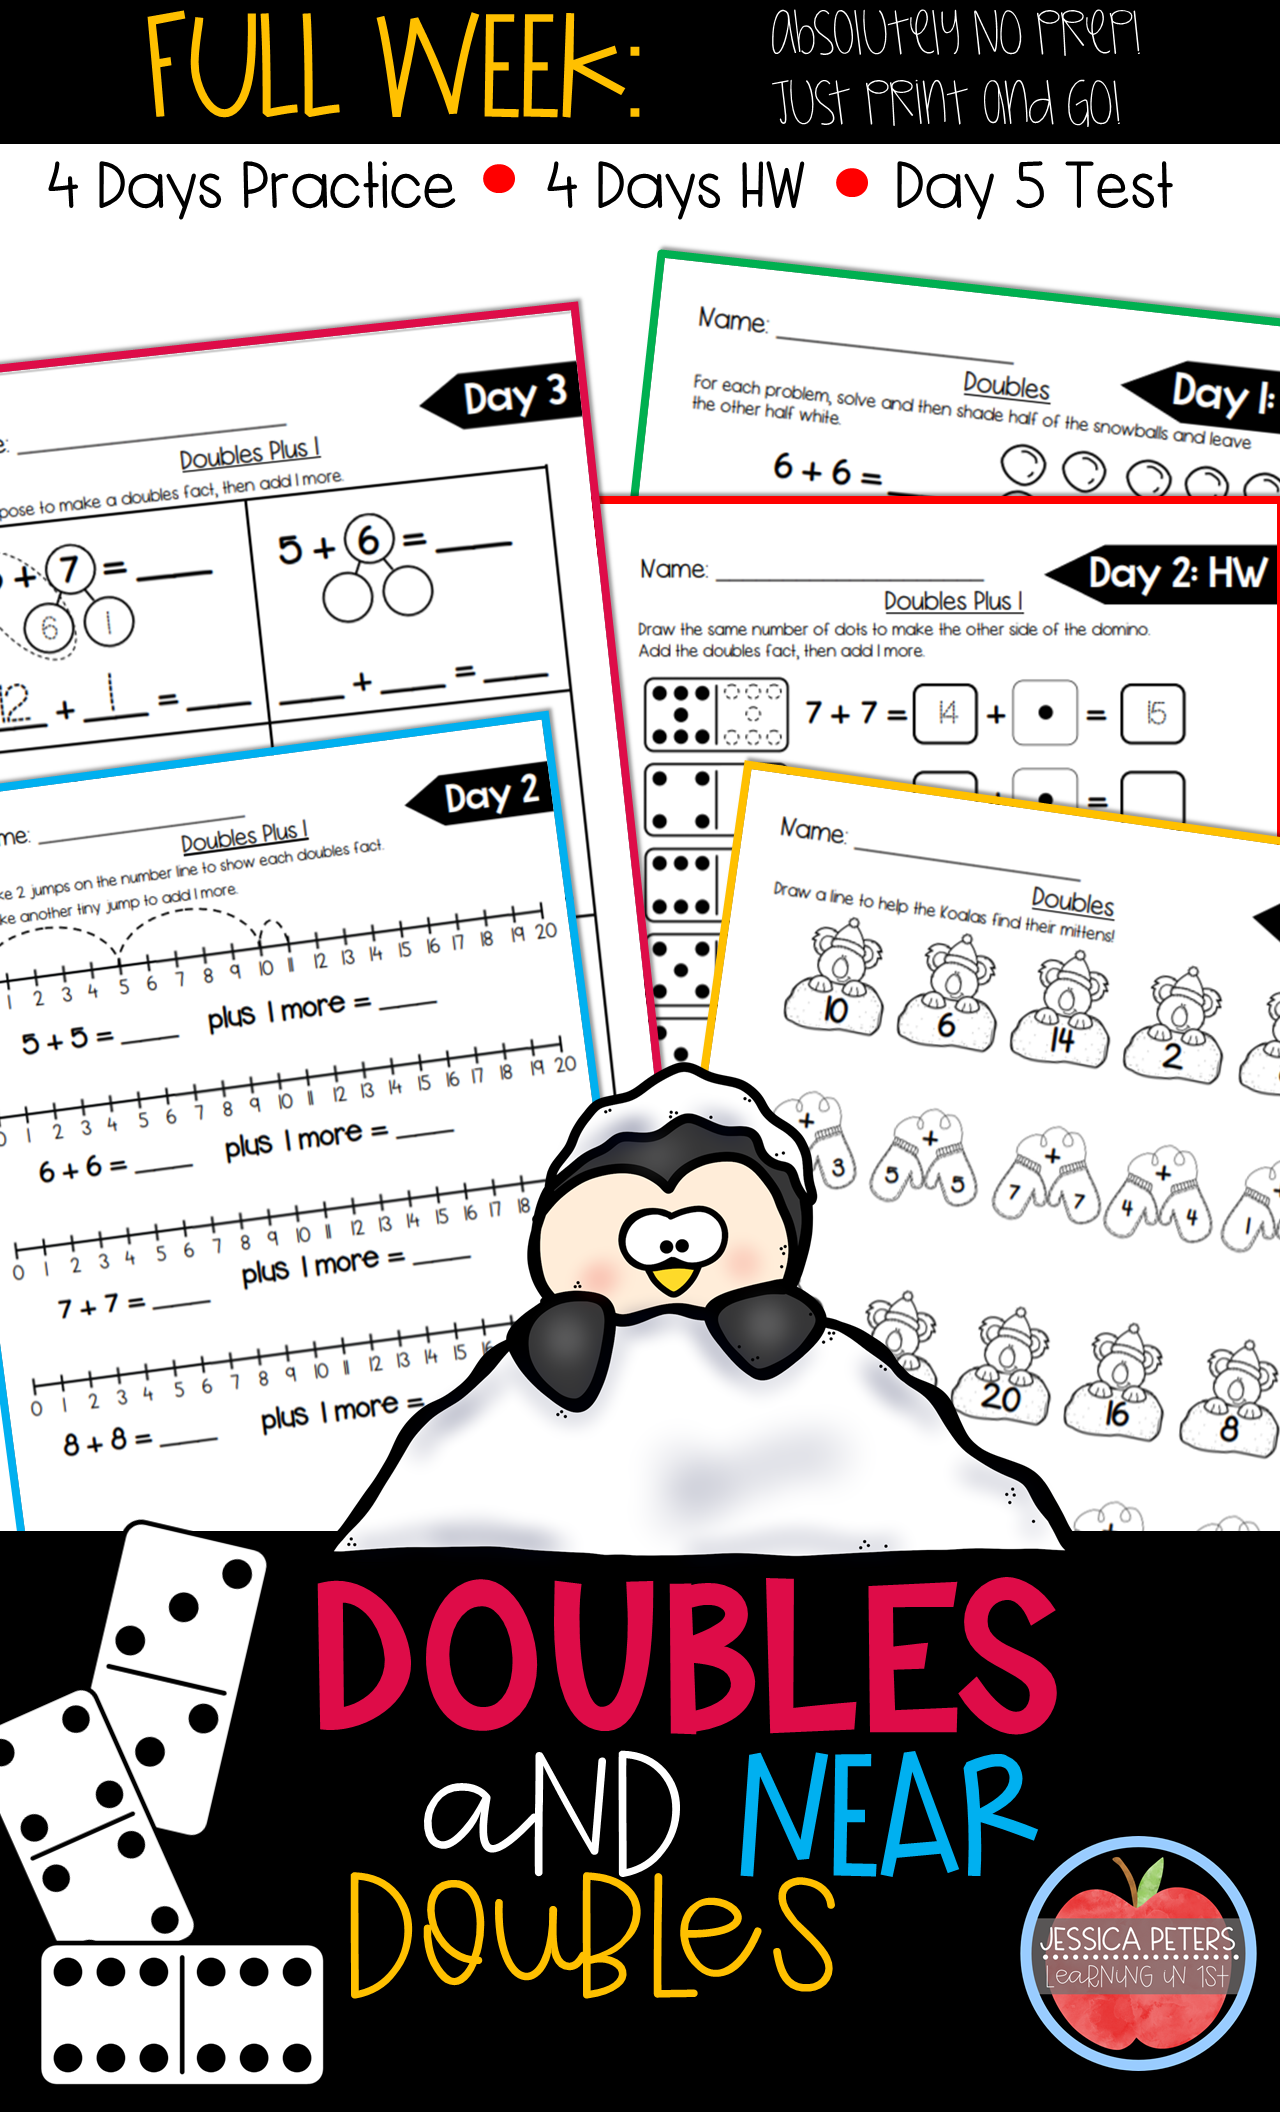 First Grade Math Doubles And Near Doubles Doubles Plus 1 Full Week Worksheets First Grade Math Math Doubles Math [ 2112 x 1280 Pixel ]